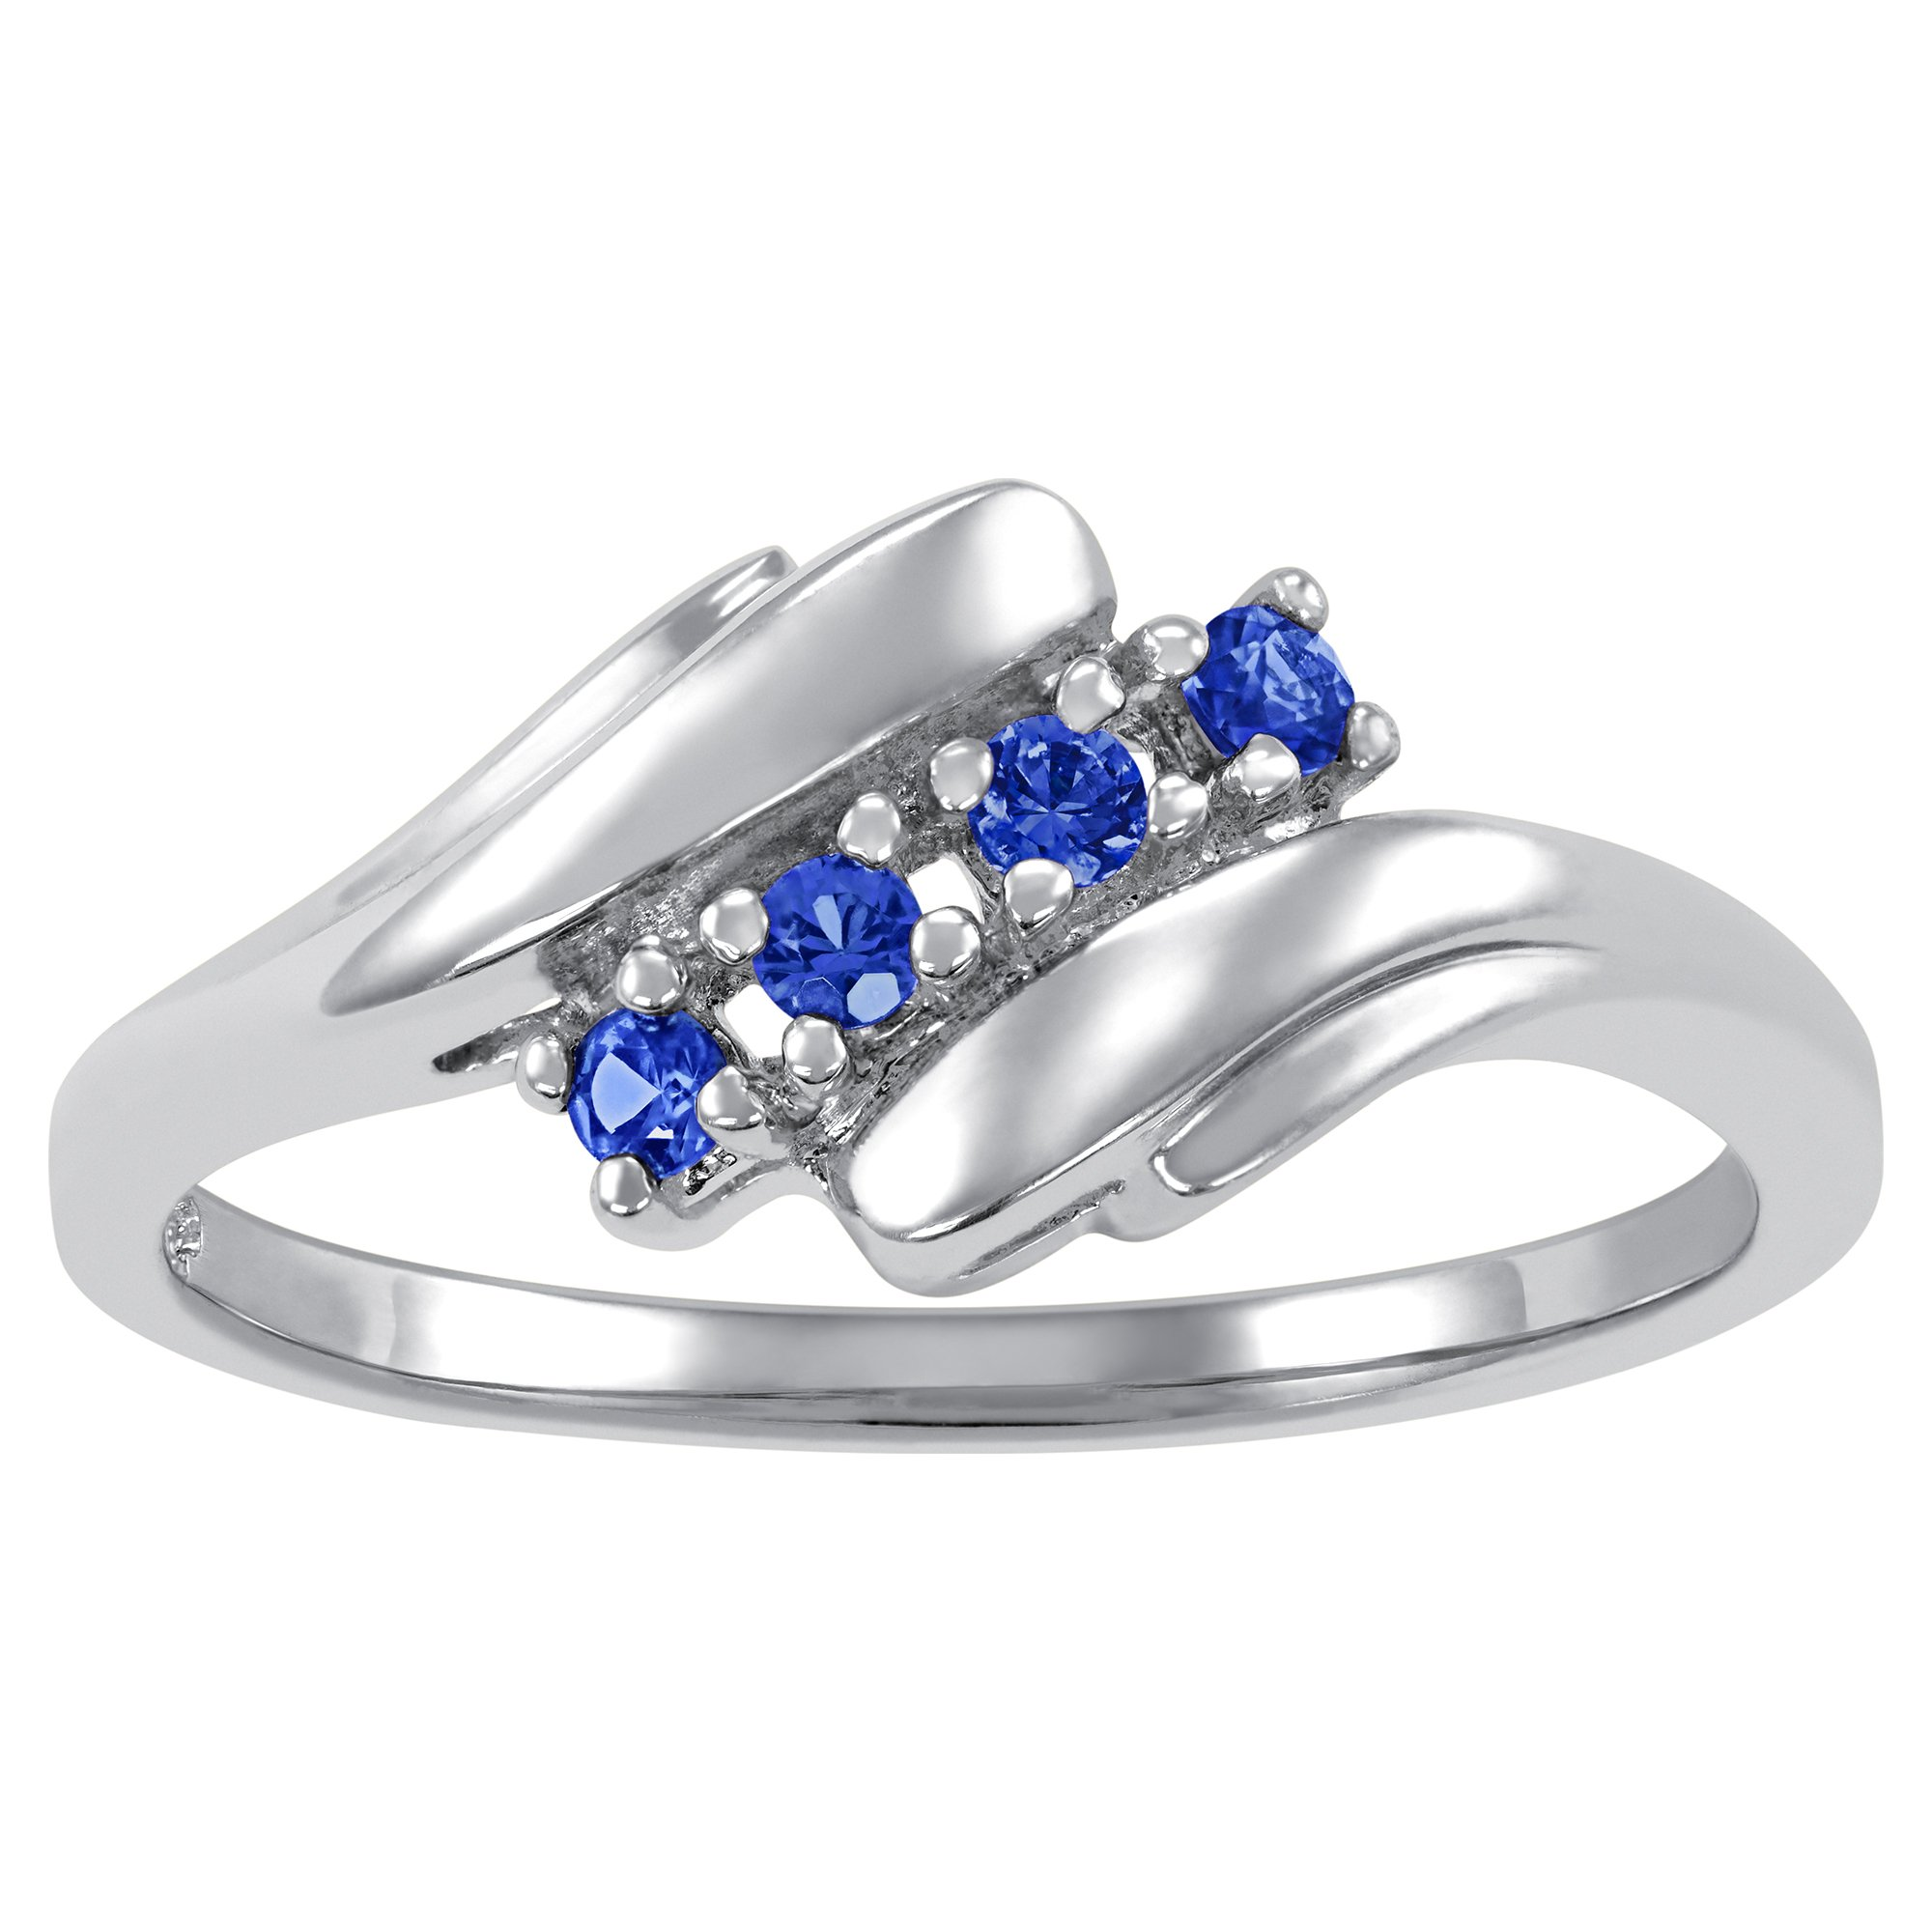 ArtCarved Love Promise Simulated Sapphire September Birthstone Ring, Sterling Silver, Size 7